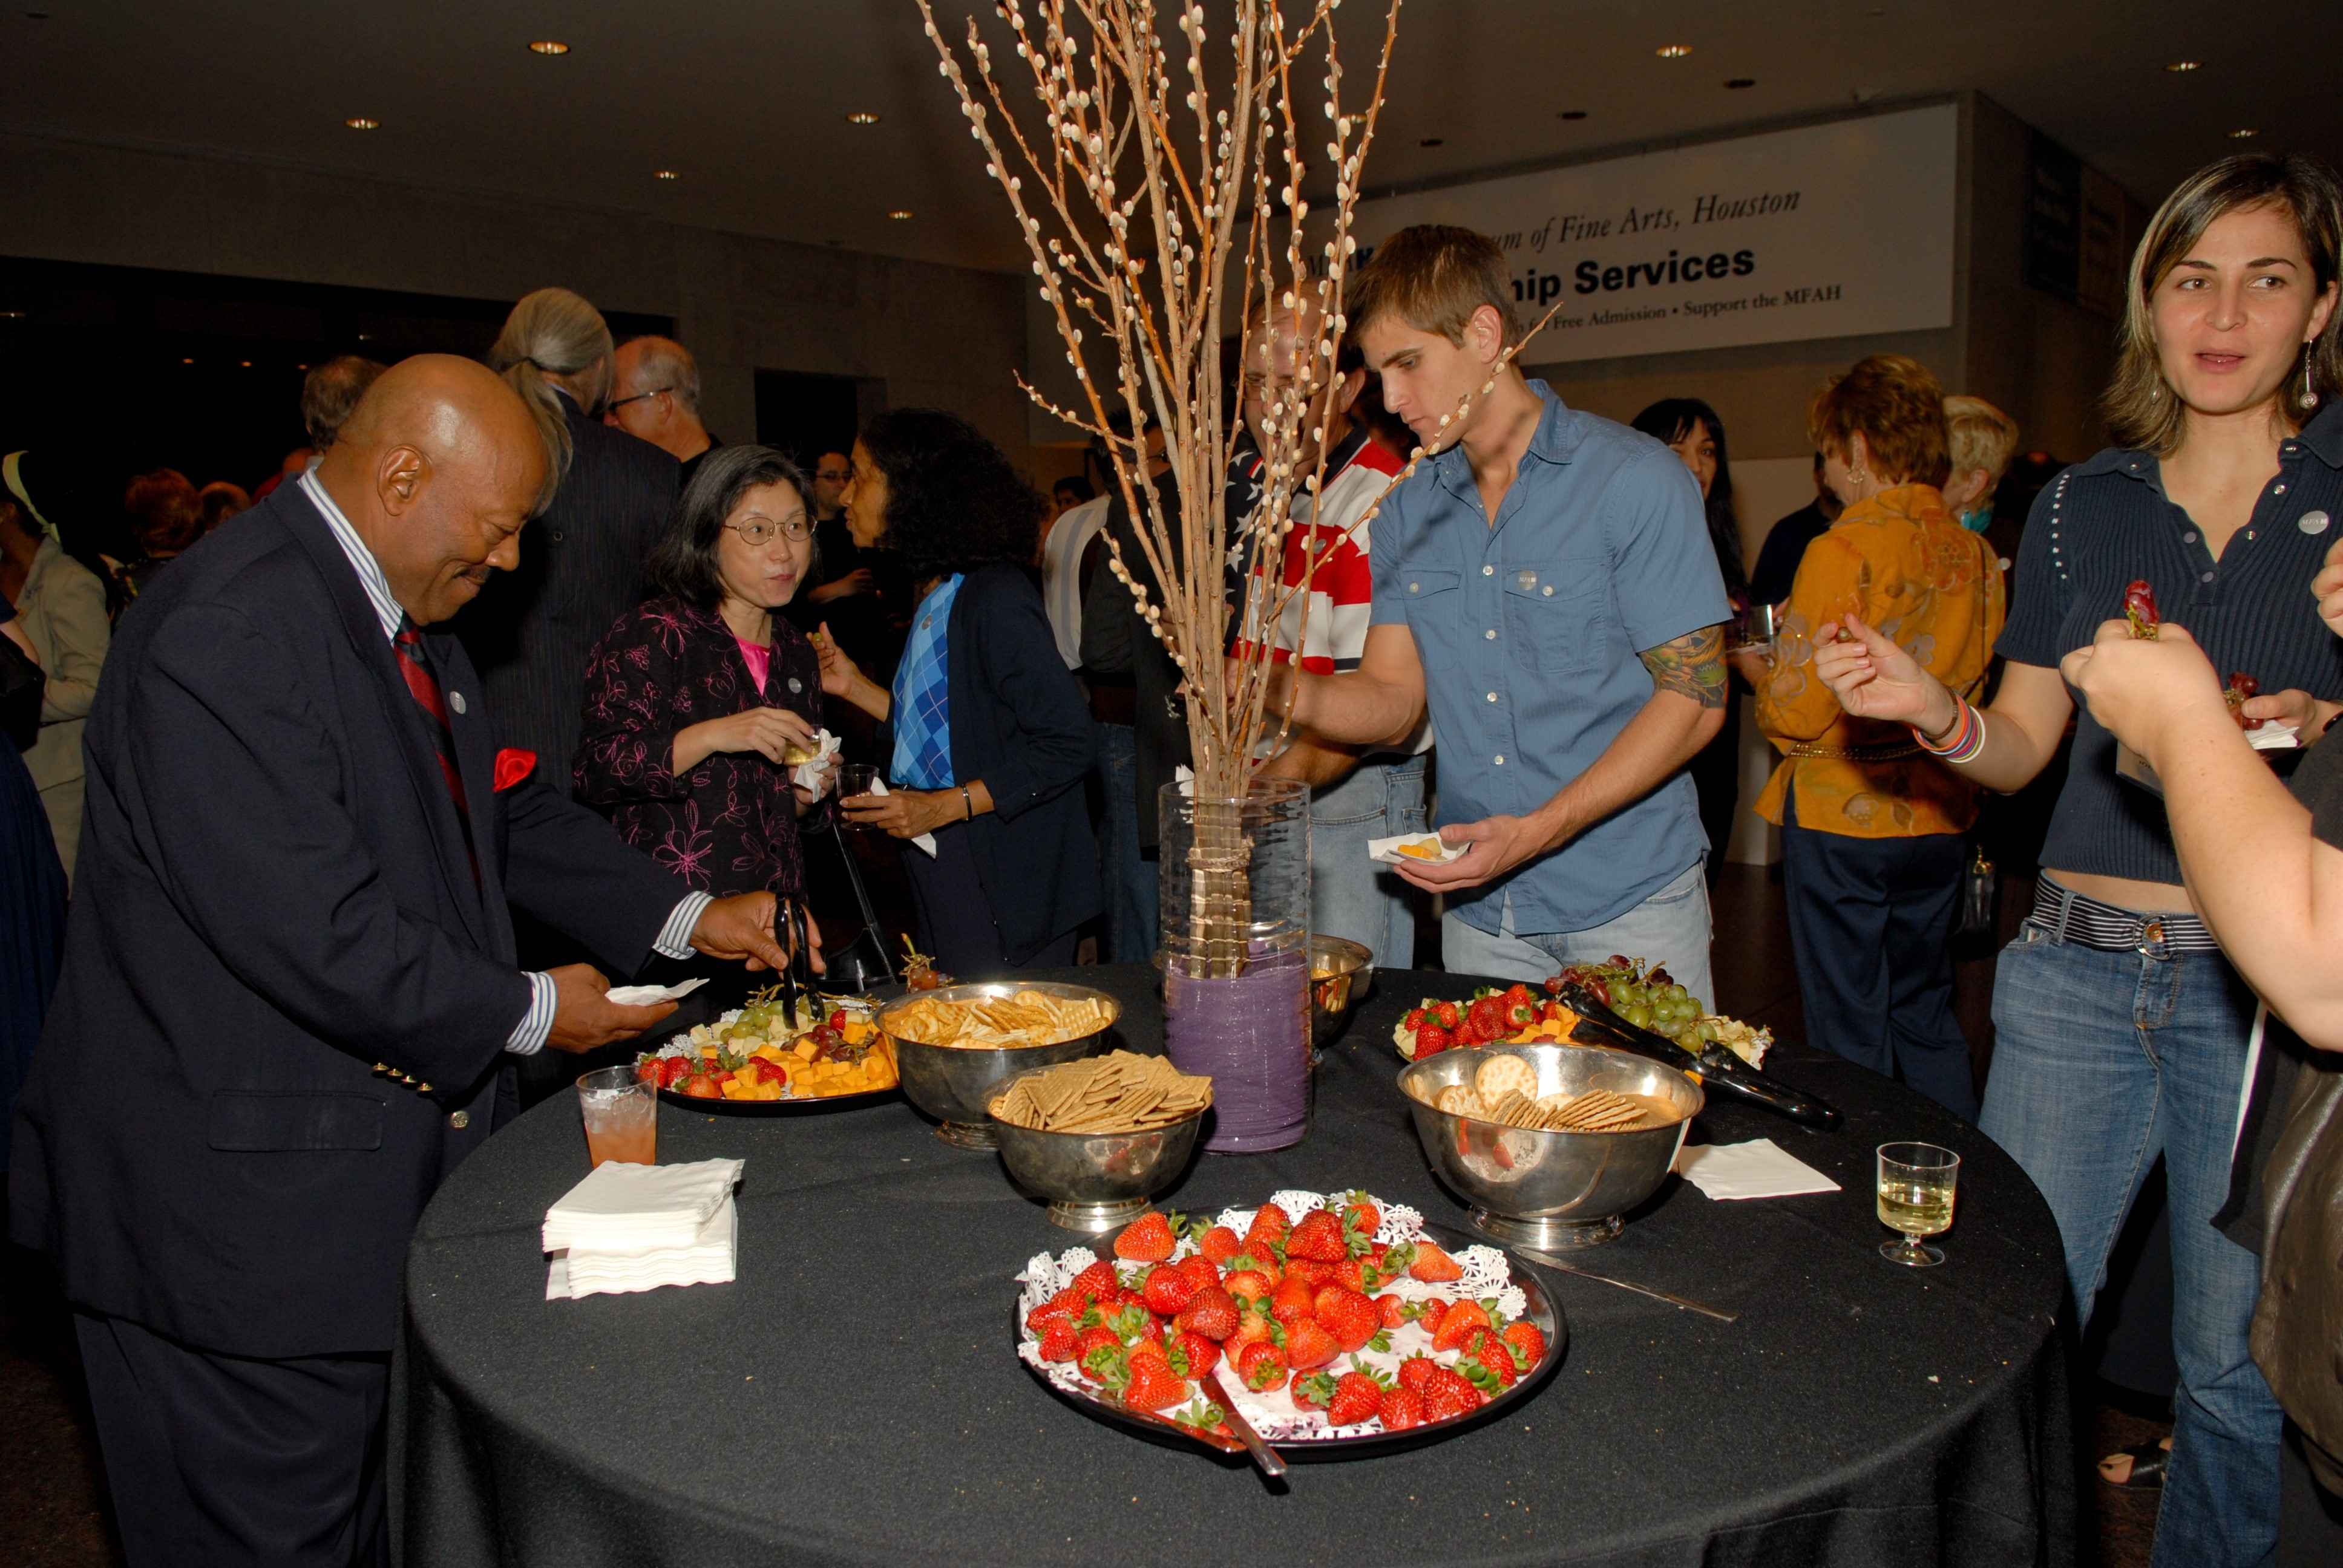 Member Events and Programs | The Museum of Fine Arts, Houston